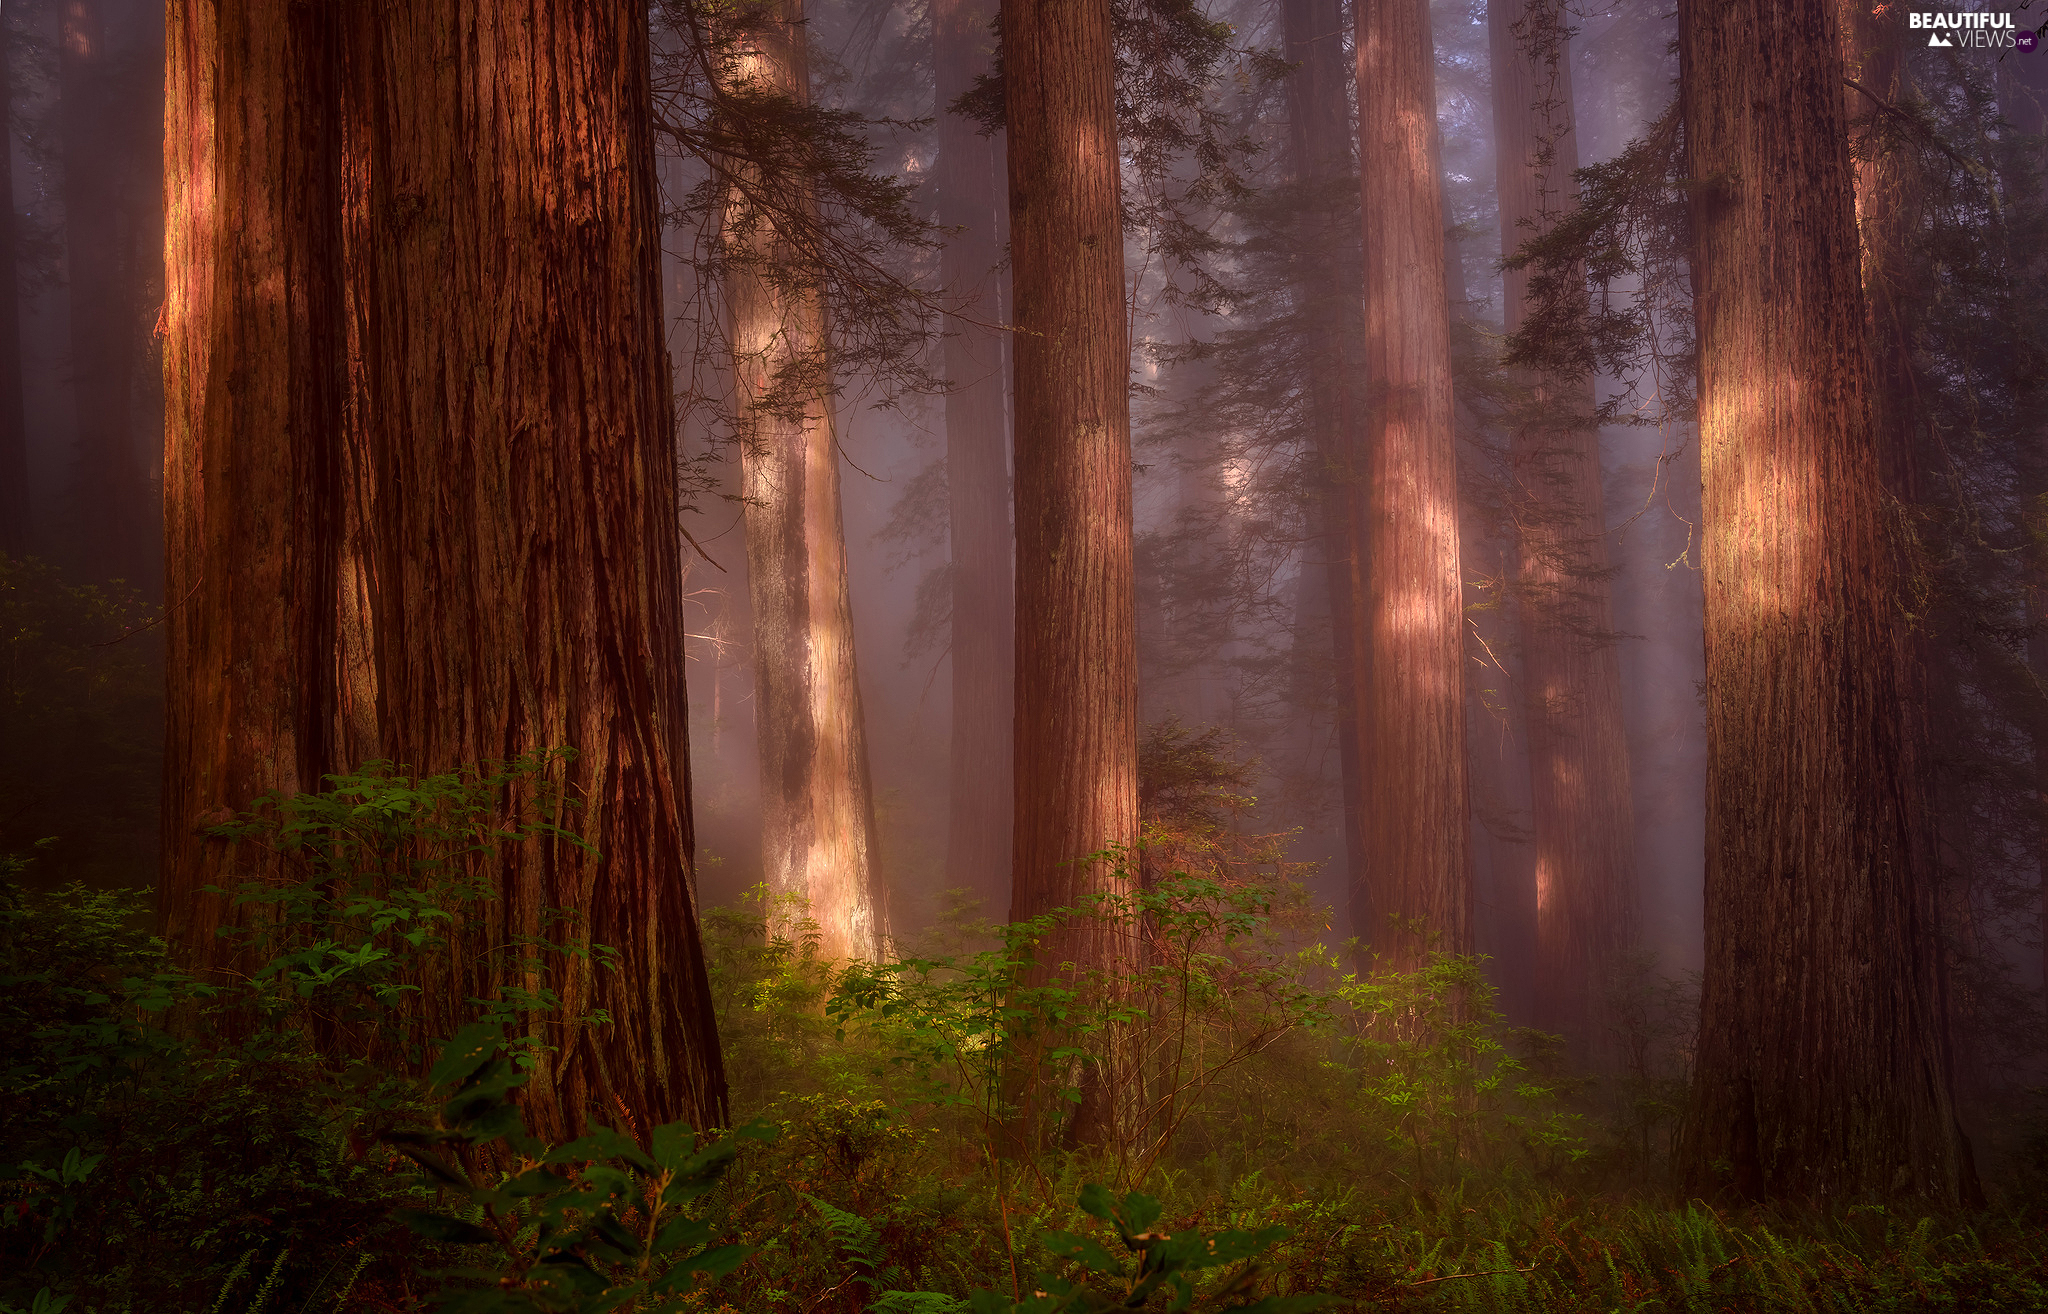 State of California, The United States, Redwood National Park, forest, fern, redwoods, viewes, Fog, trees